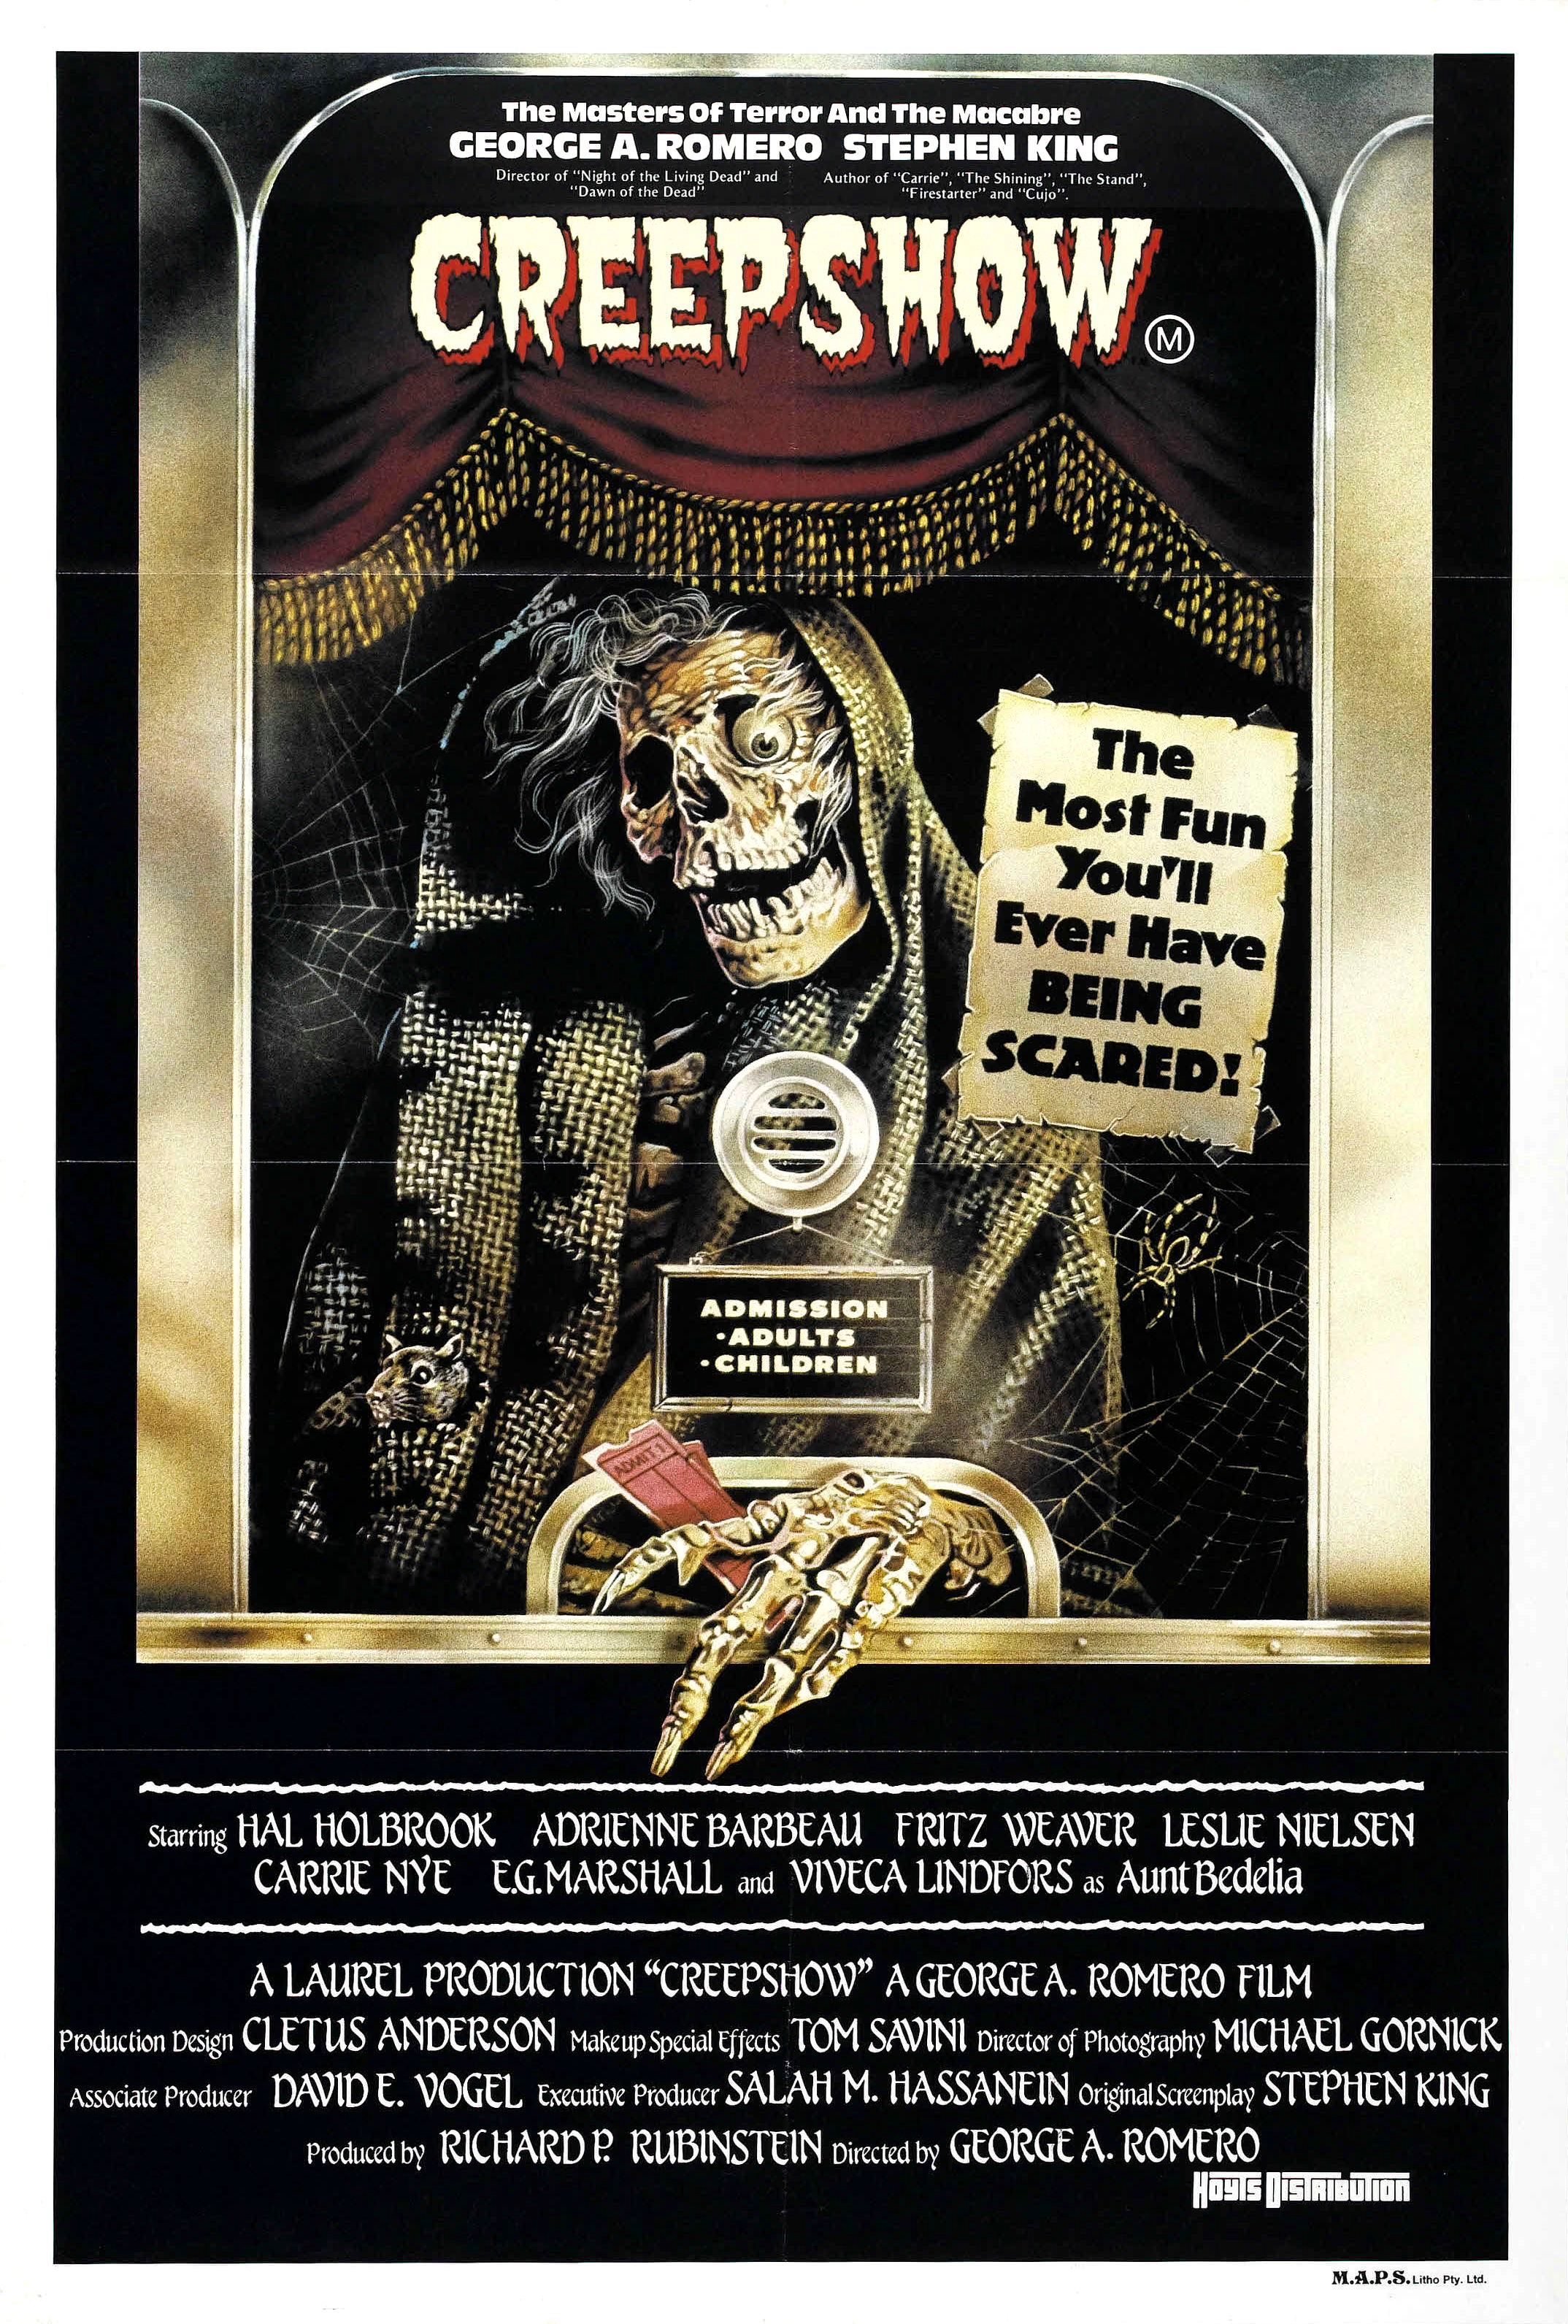 Movie Poster for &quotCreepshow&quot